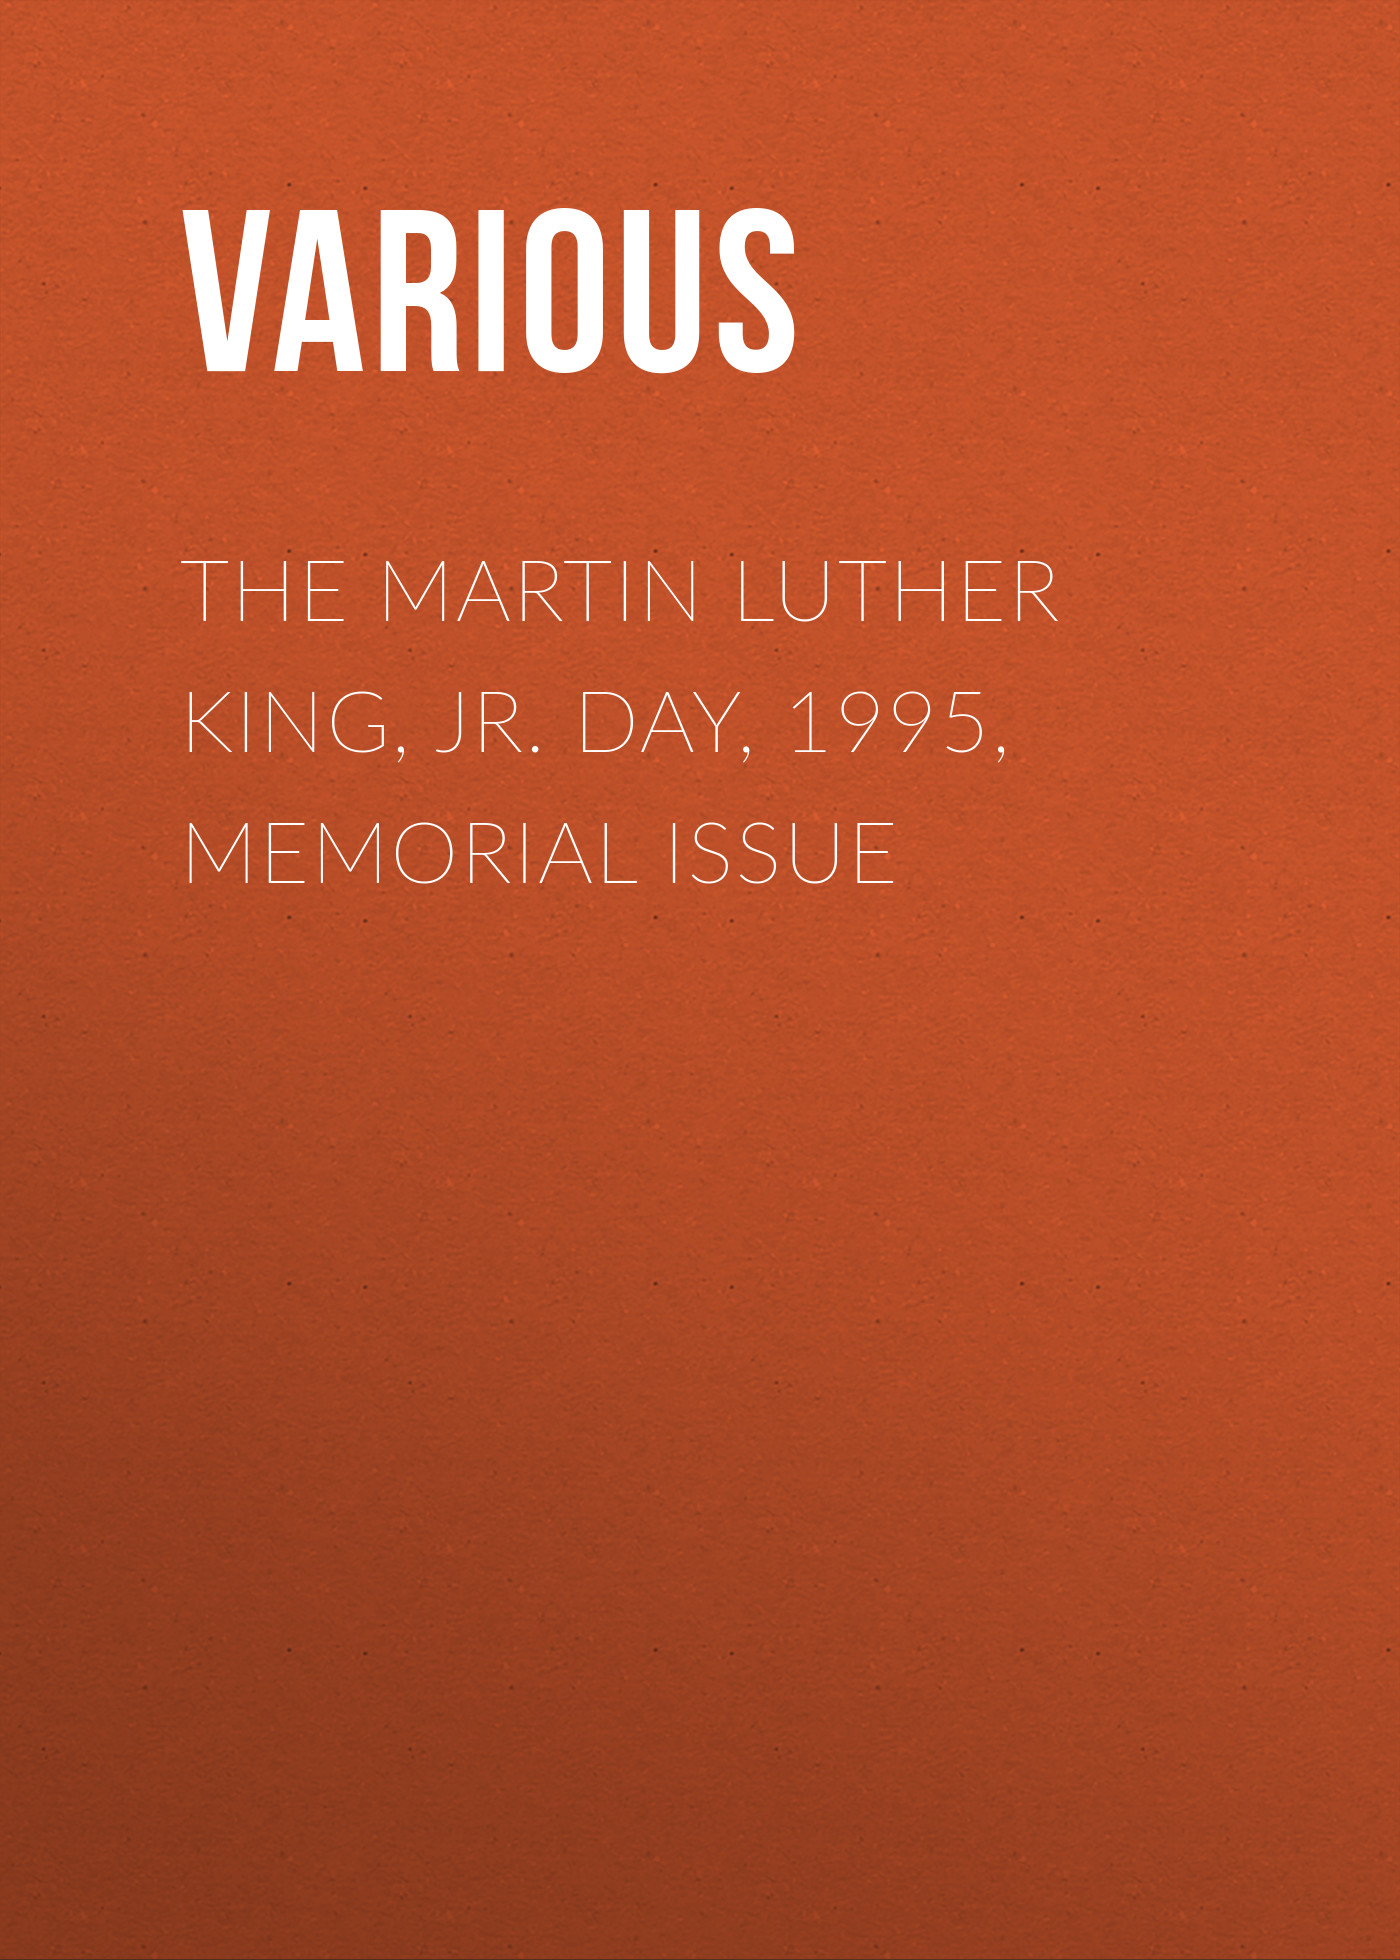 Various The Martin Luther King, Jr. Day, 1995, Memorial Issue все цены